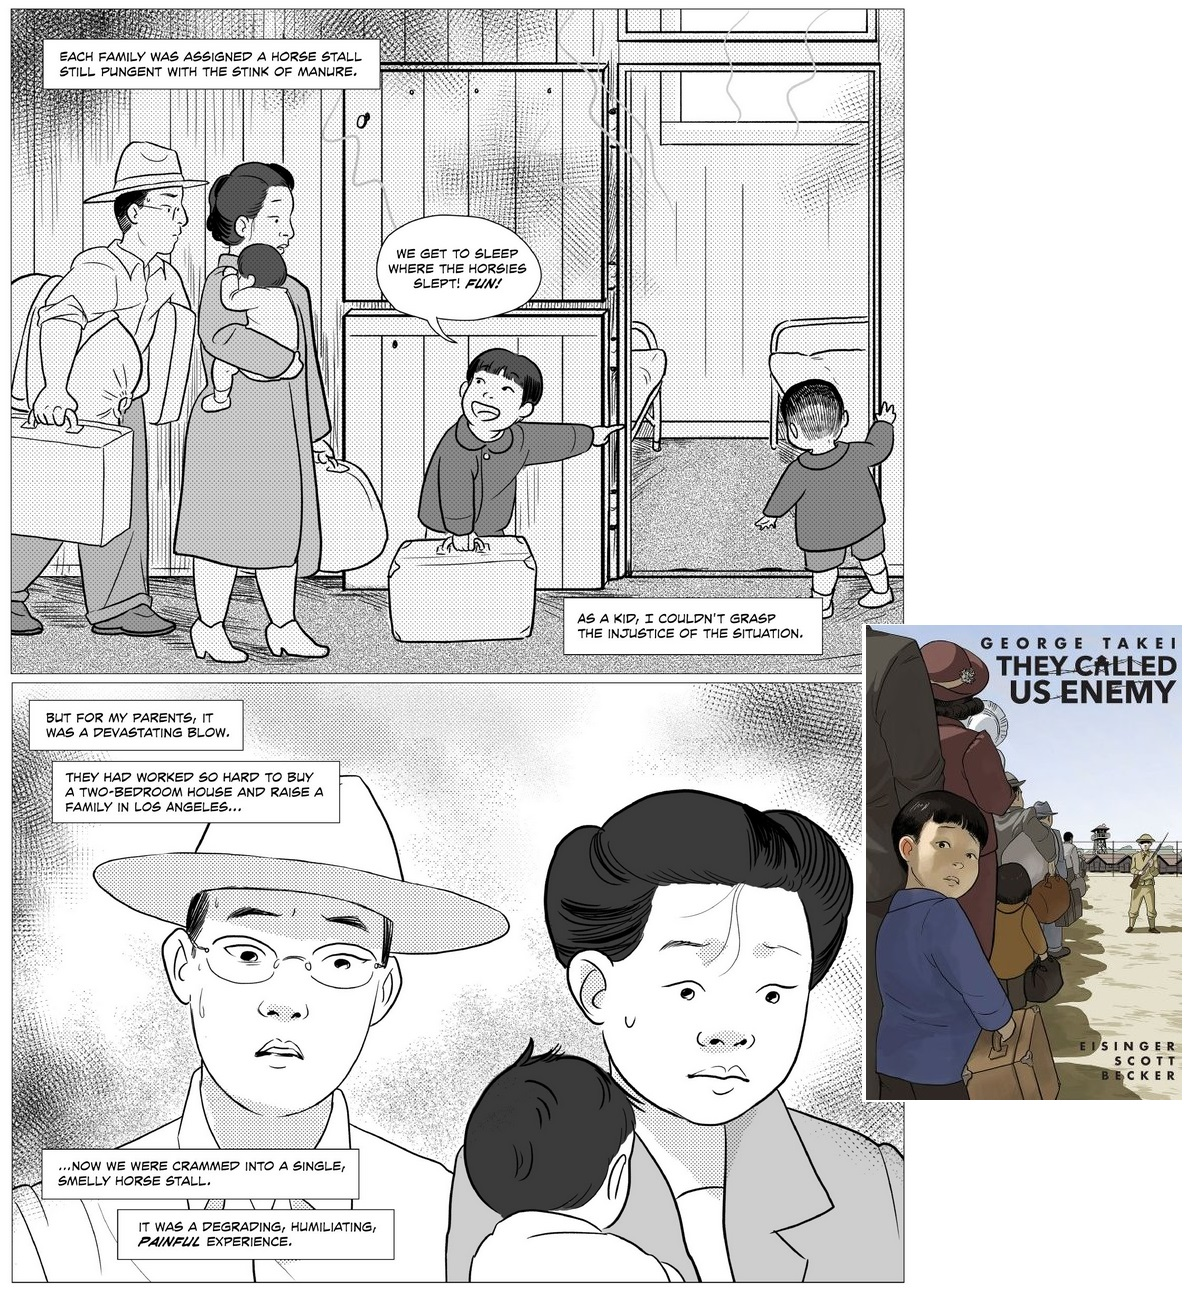 19 b Comics des Jahres - They Called Us Enemy